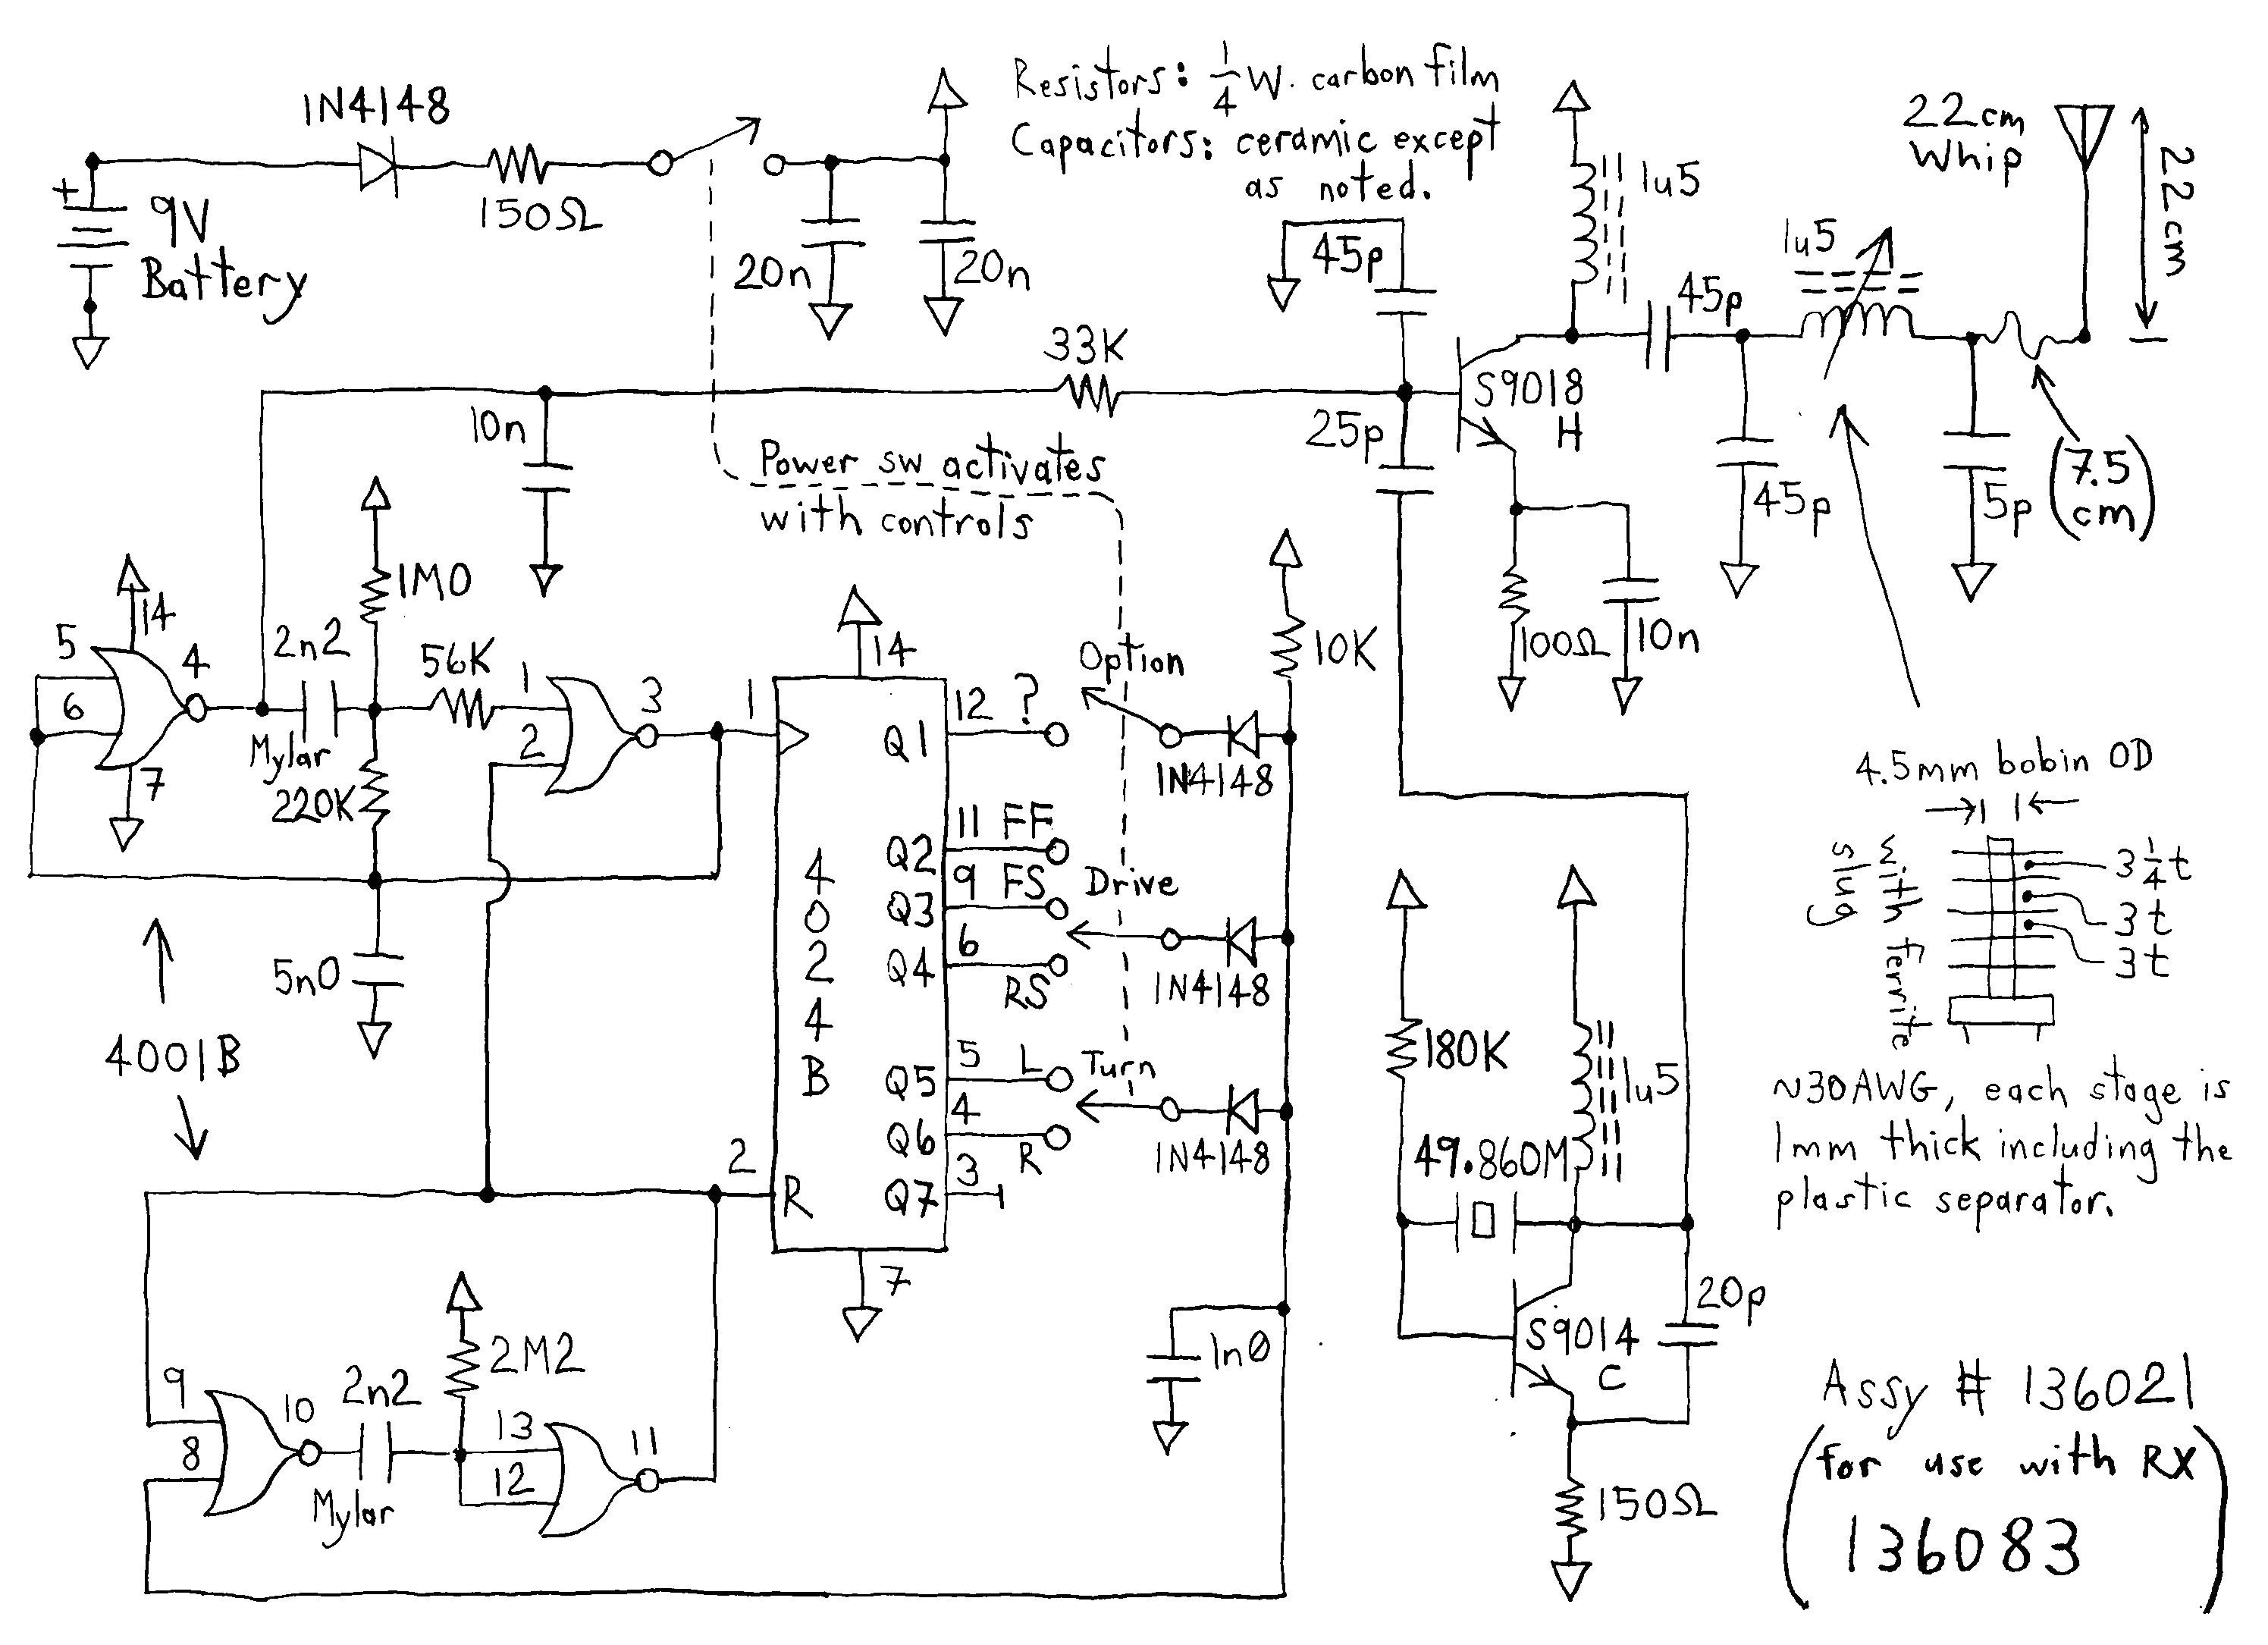 1999 chevy s10 wiring diagram best of 2001 chevy cavalier wiring harness diagram 2018 2002 chevy